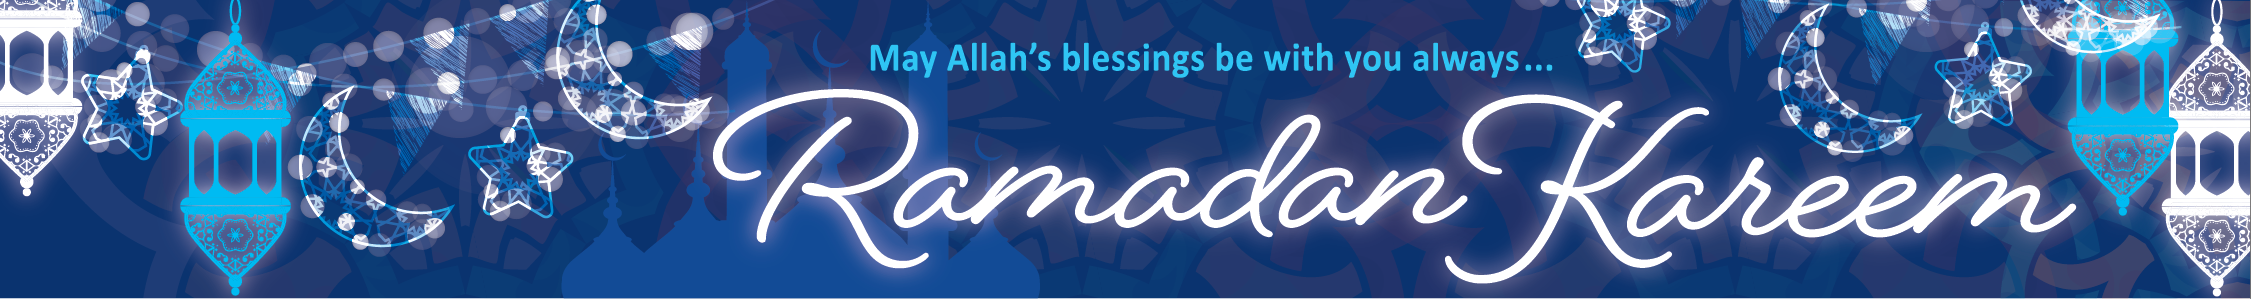 We wish you a blessed and happy Ramadan. Our working hours are shortened till 3pm during this holy month.